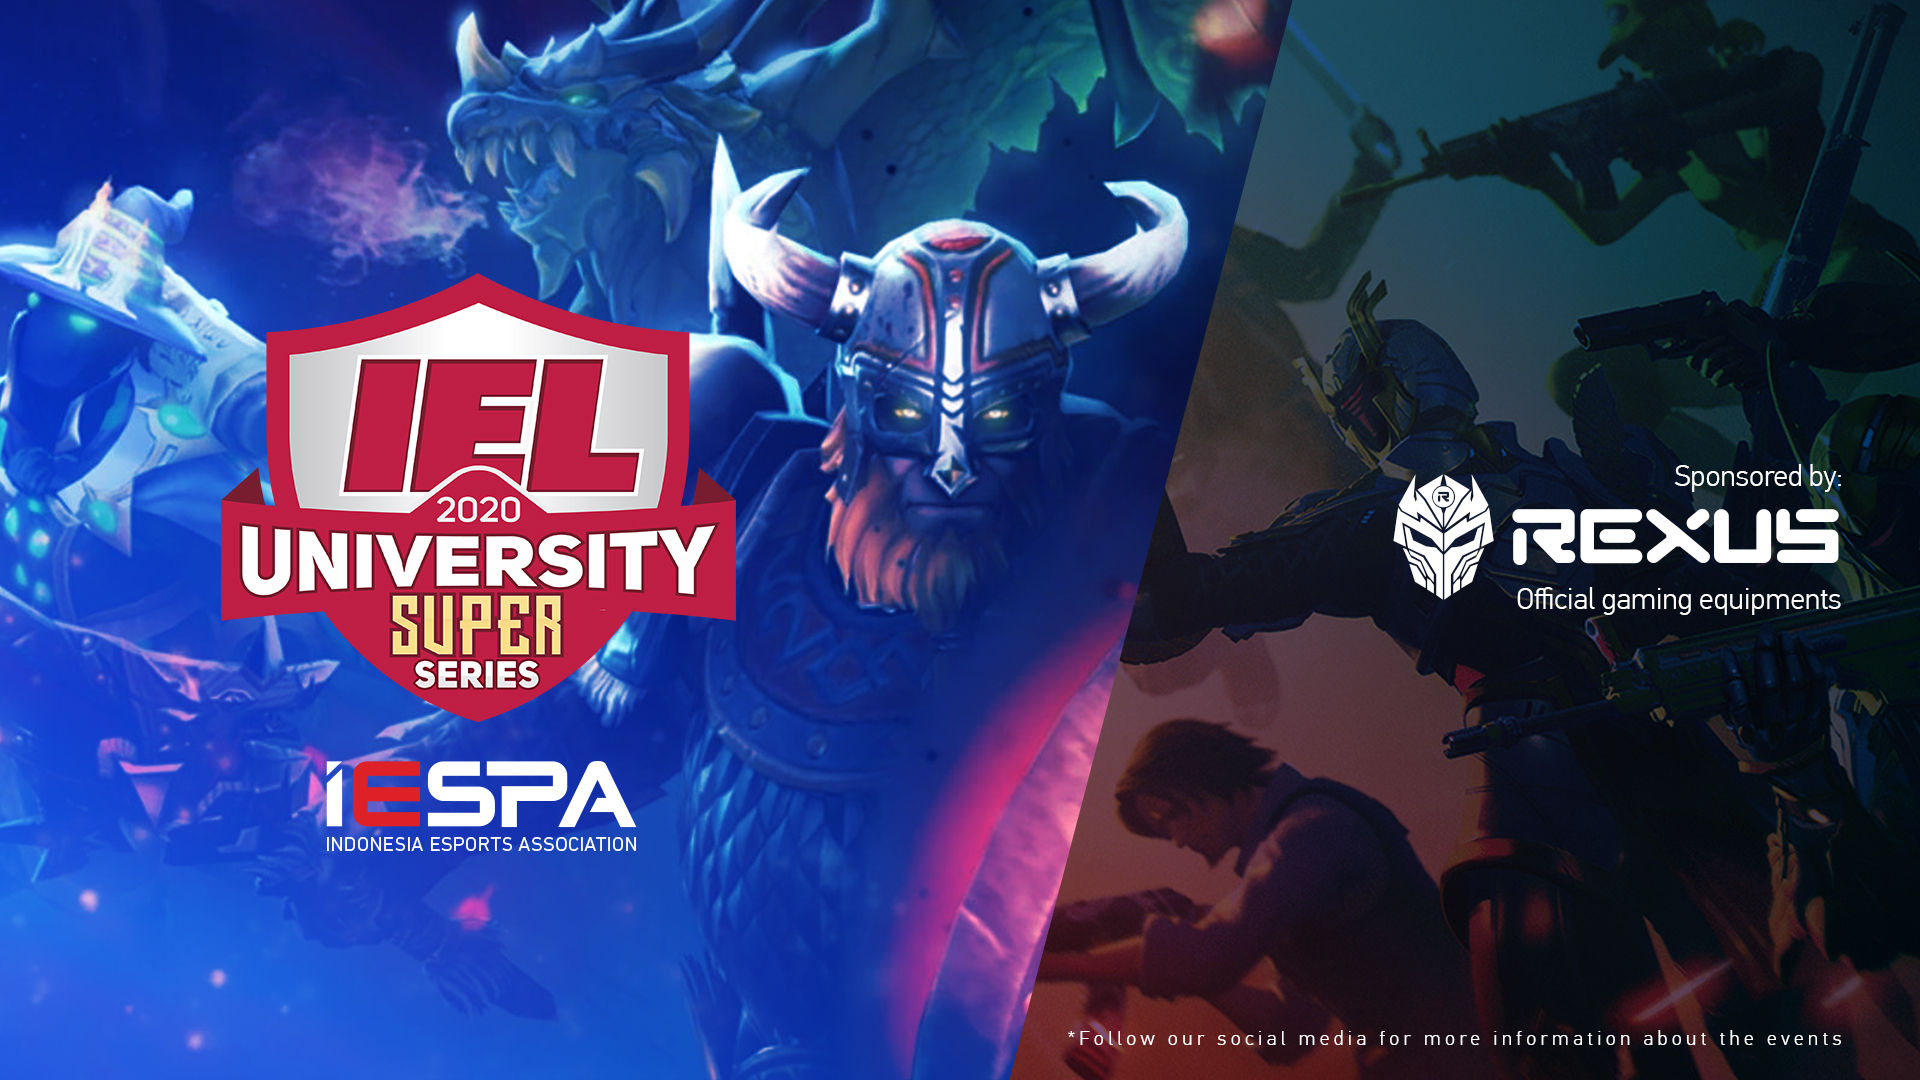 IEL University super series 2020